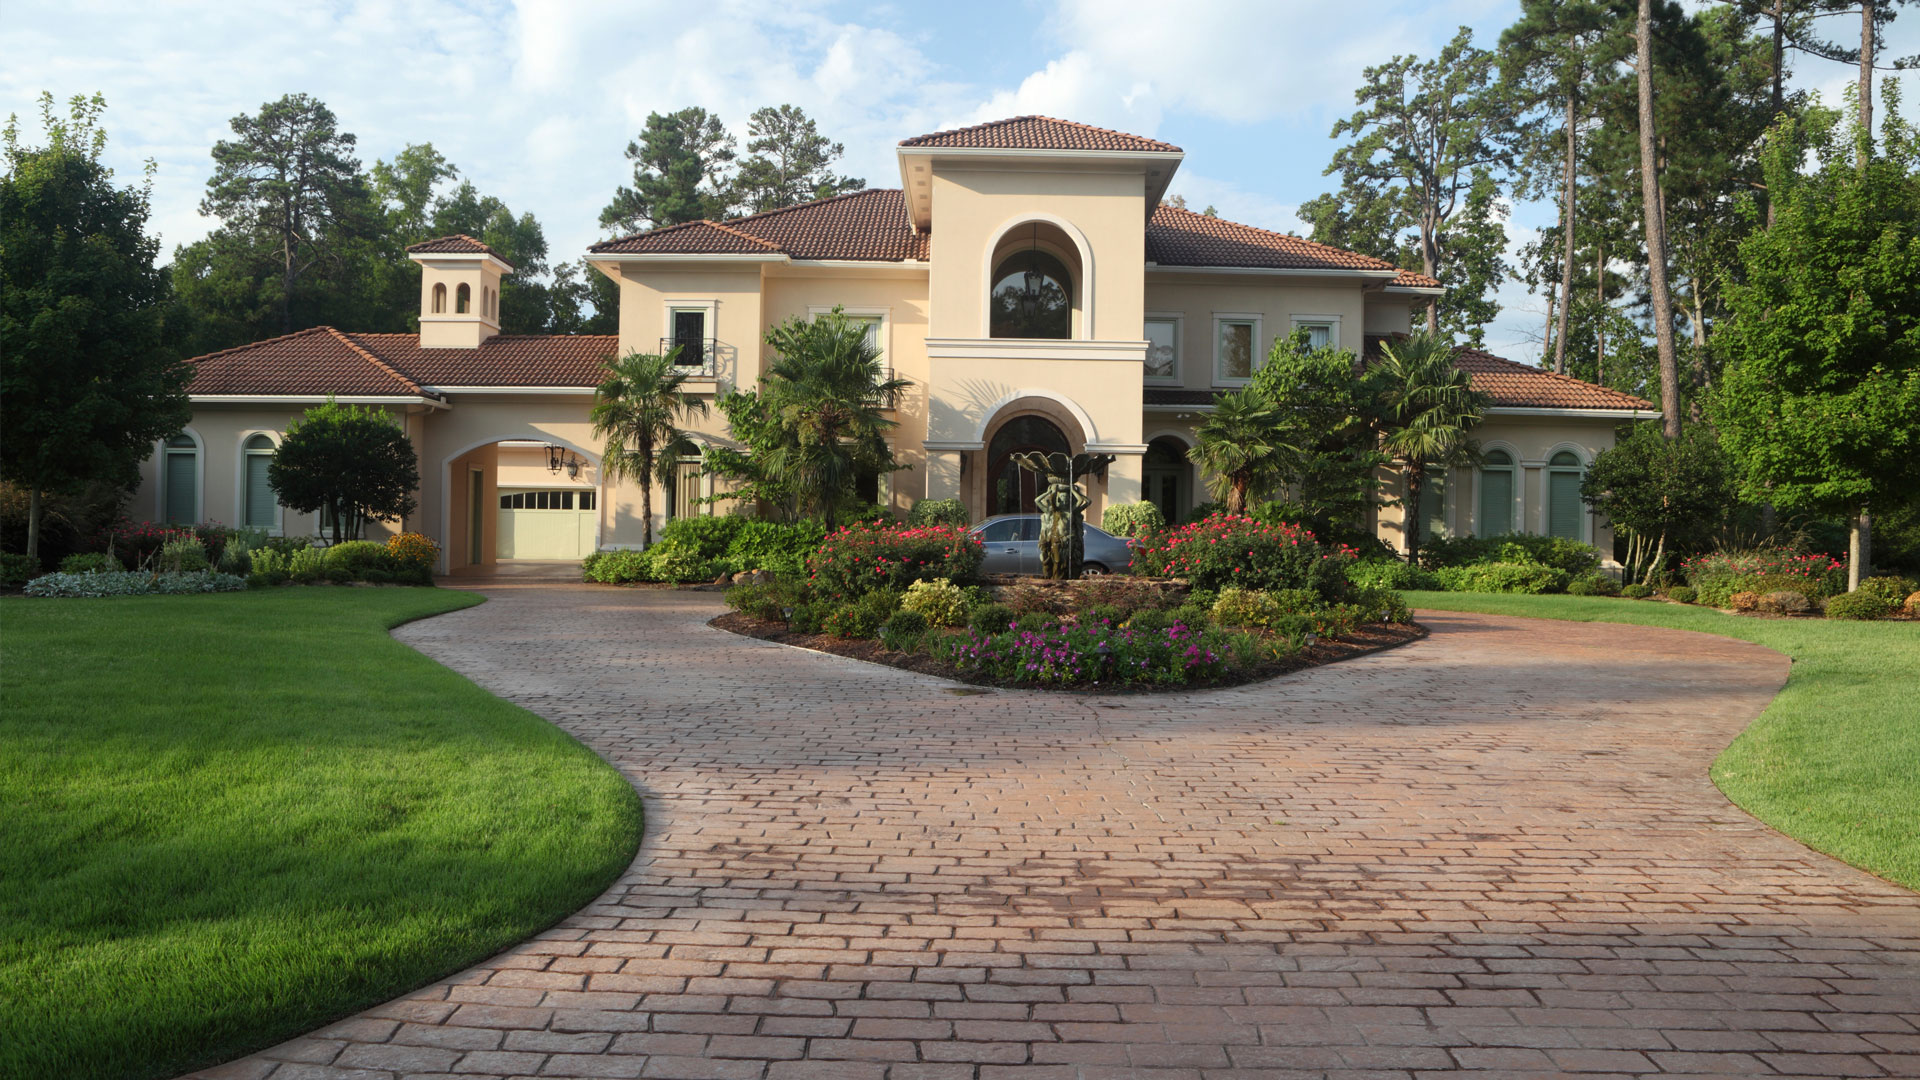 Luxury home exterior